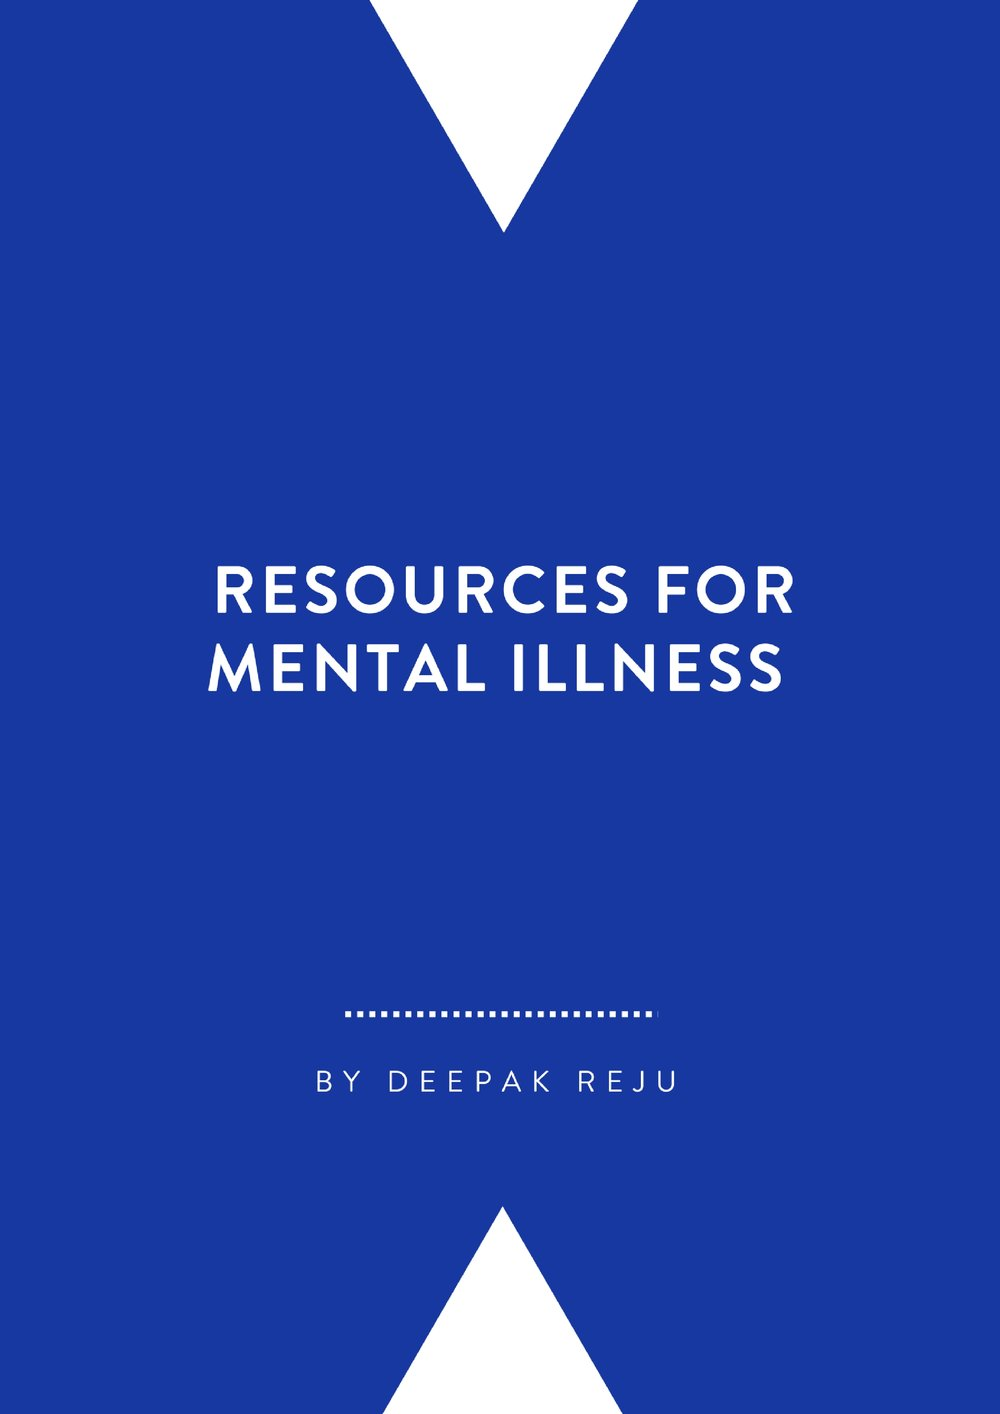 Resources for Mental Illness By Deepak Reju